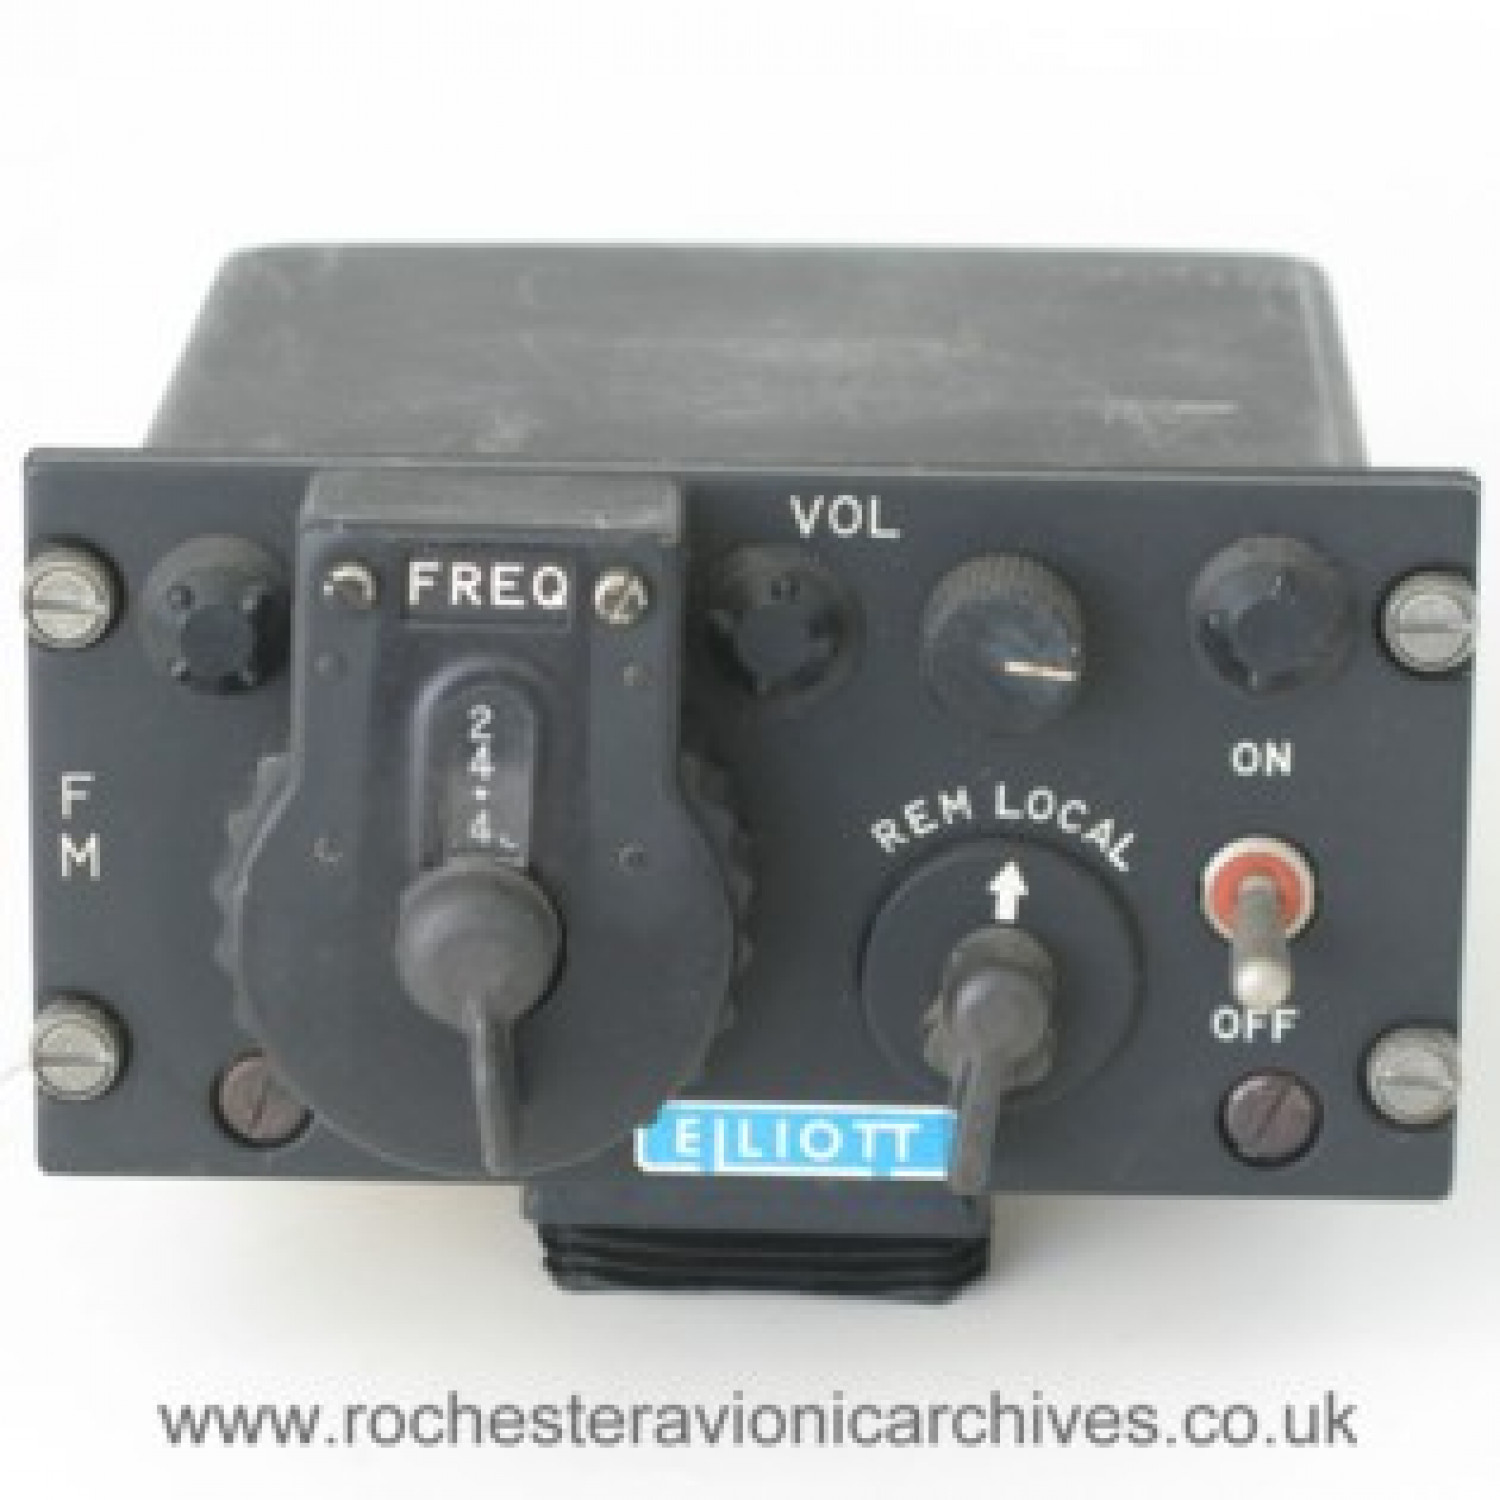 Radio Set, Control Unit